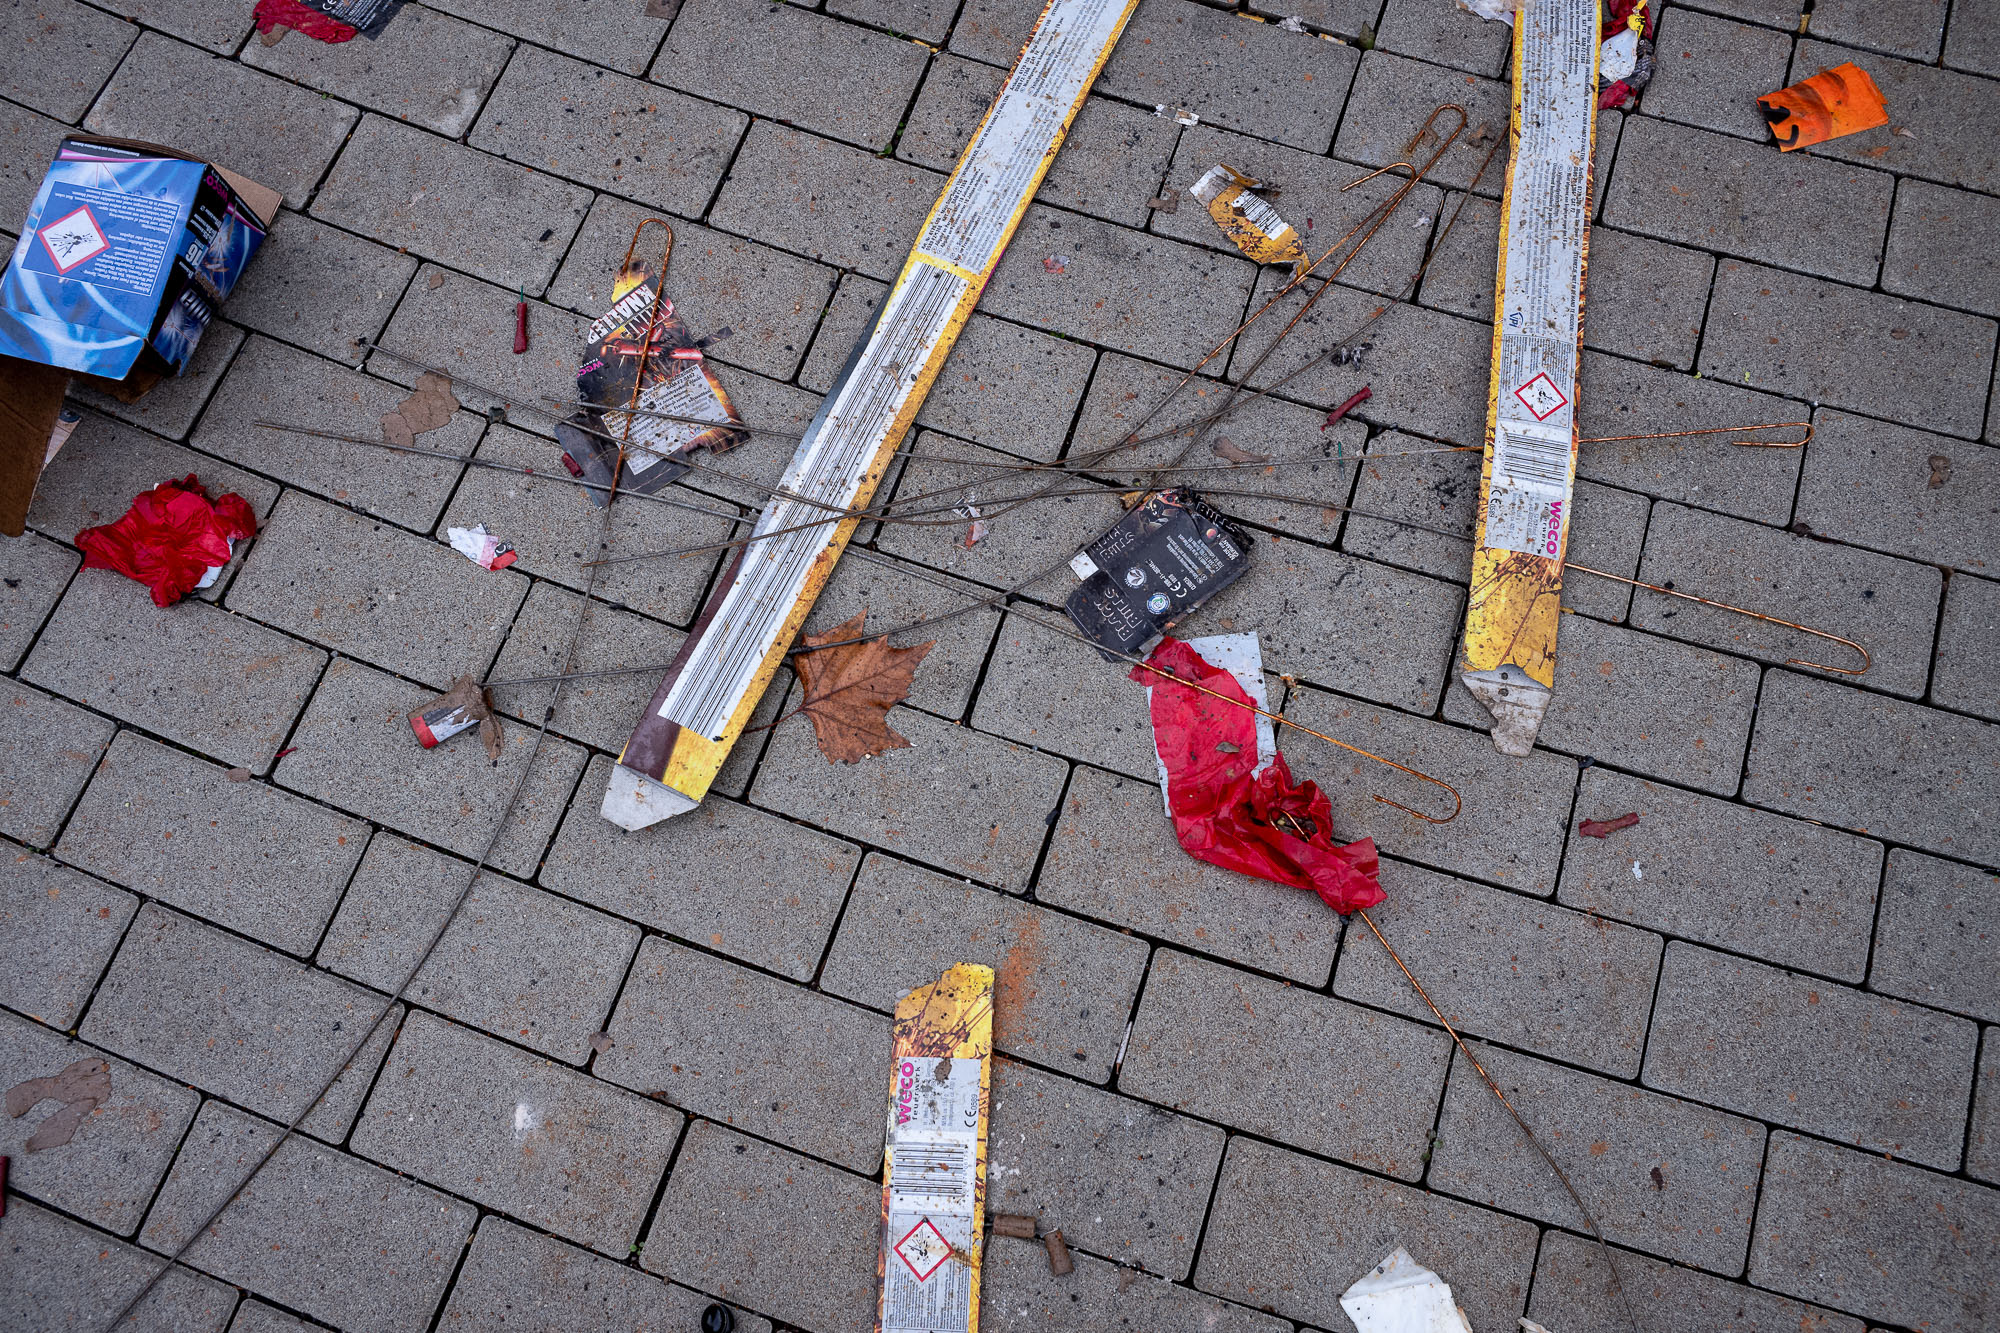 Fireworks remains on the street.